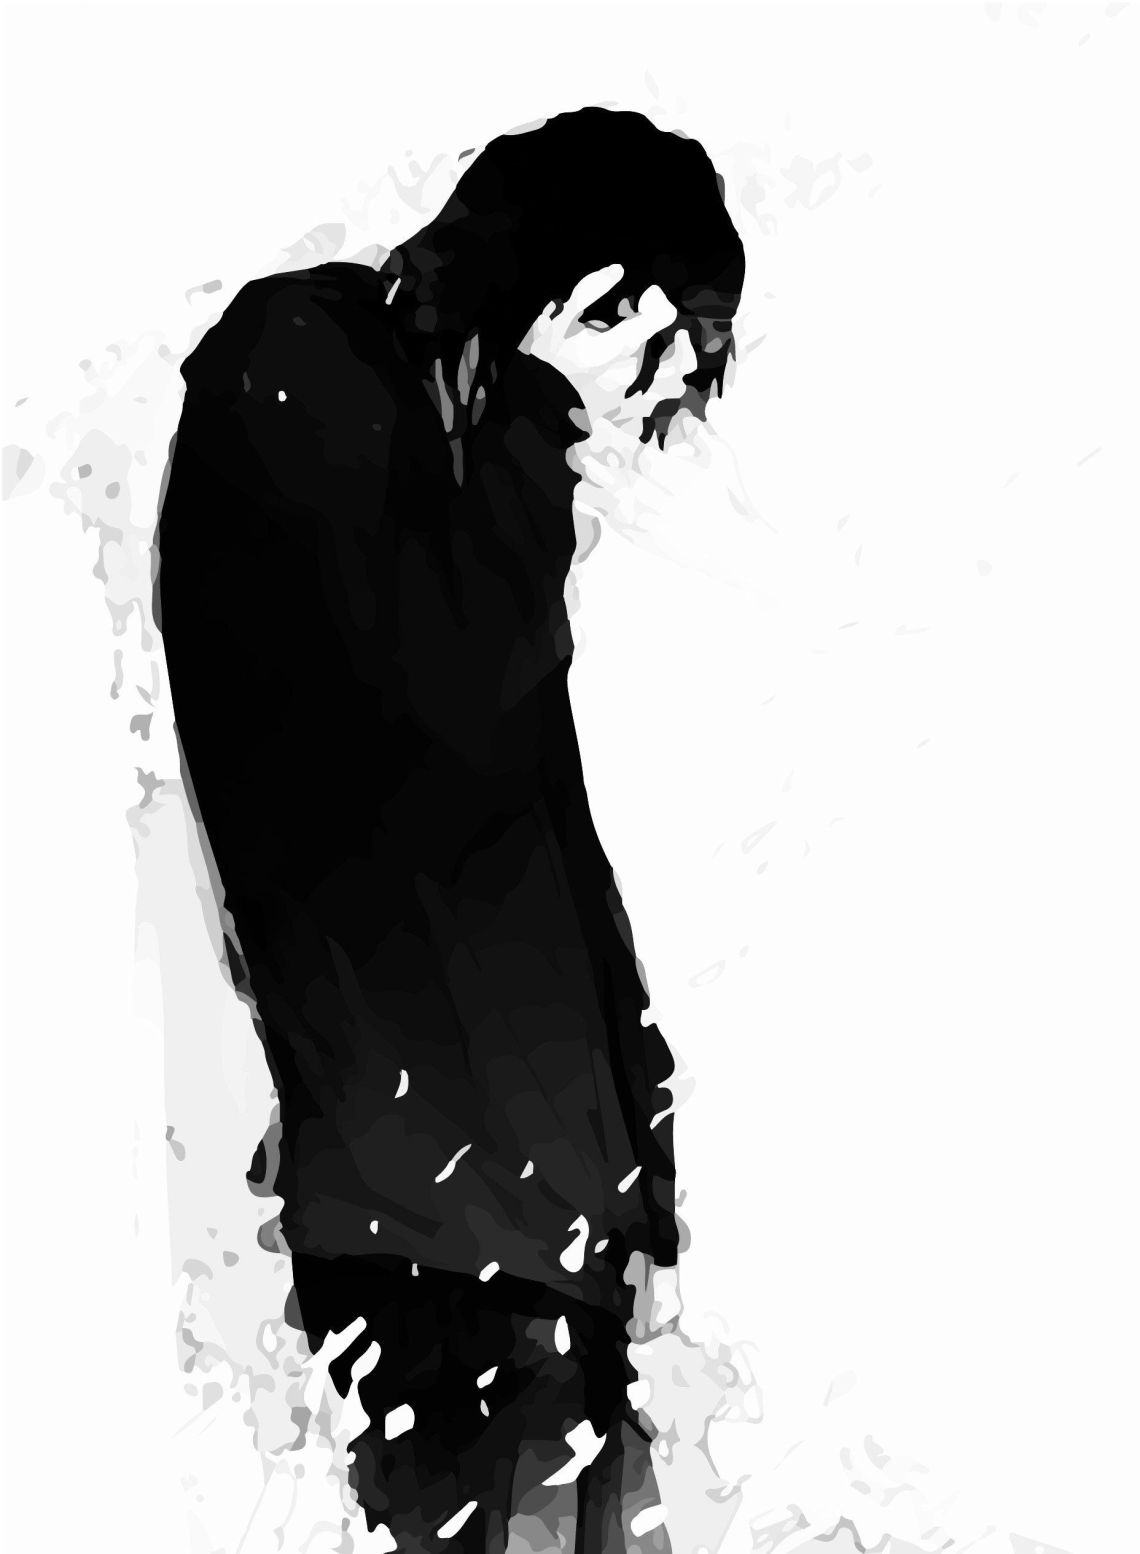 Anime Boys Crying Wallpapers Wallpaper Cave